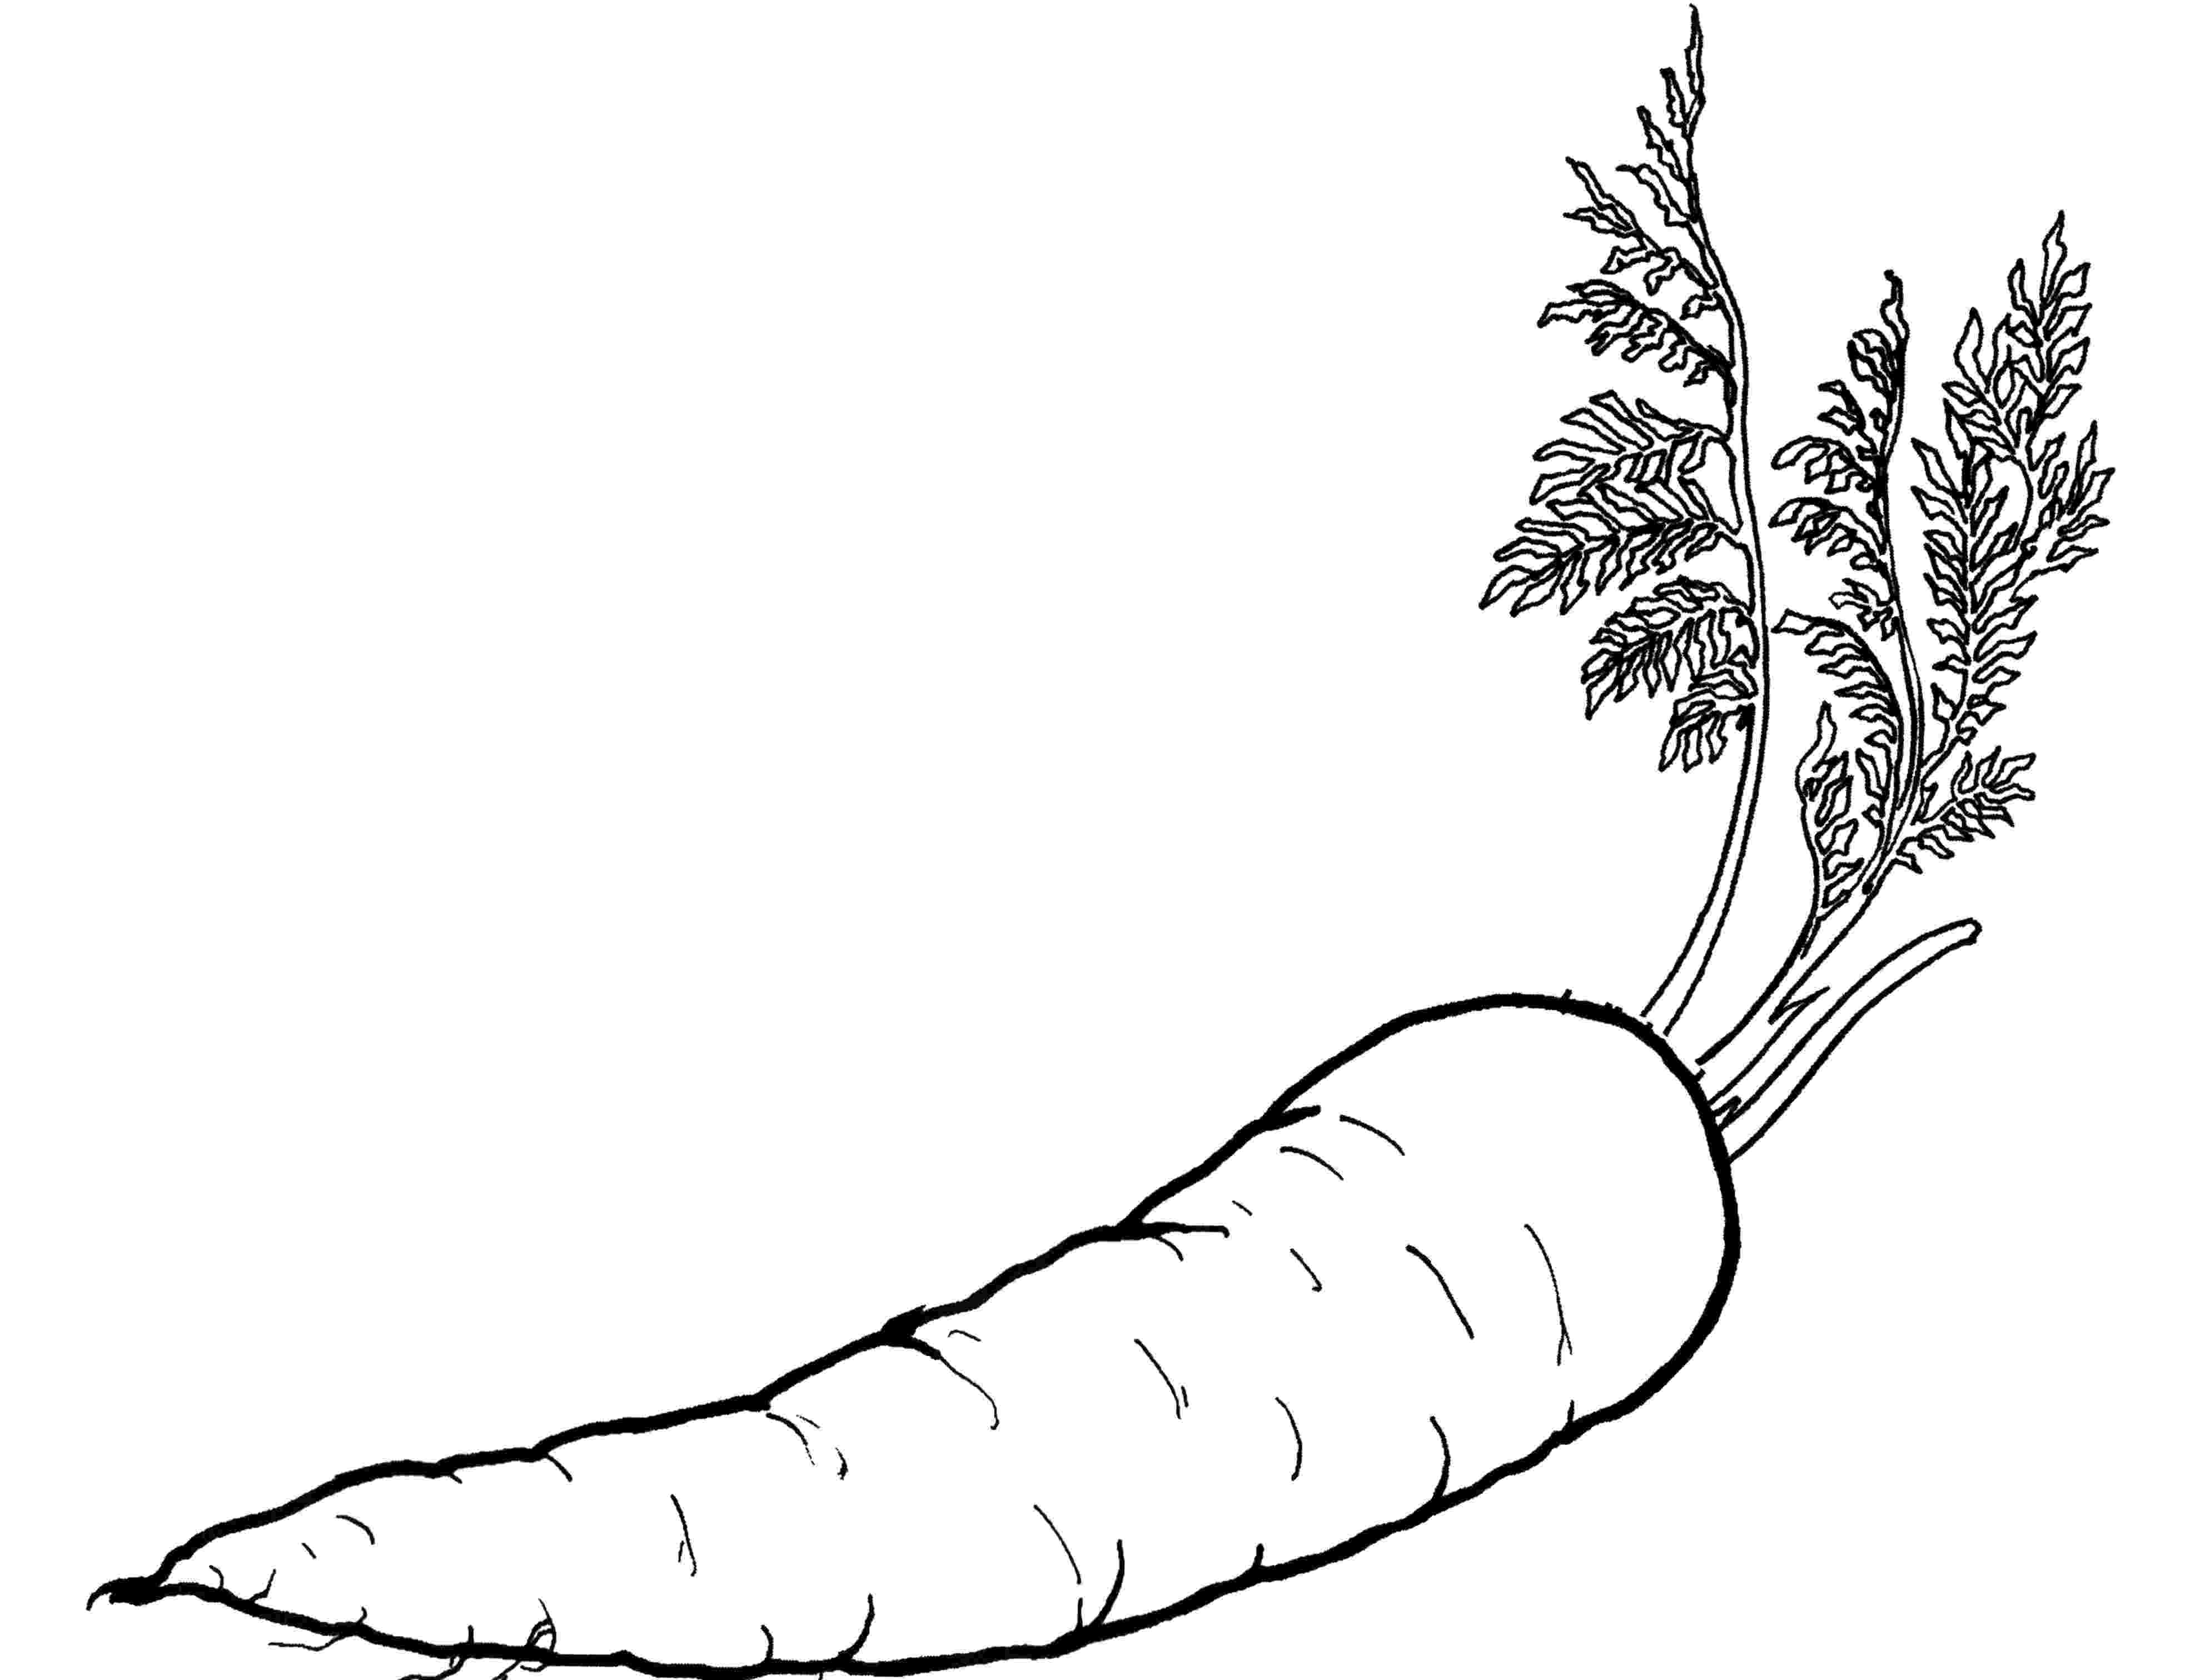 vegetables for colouring vegetables picture to print and color fruit coloring colouring for vegetables